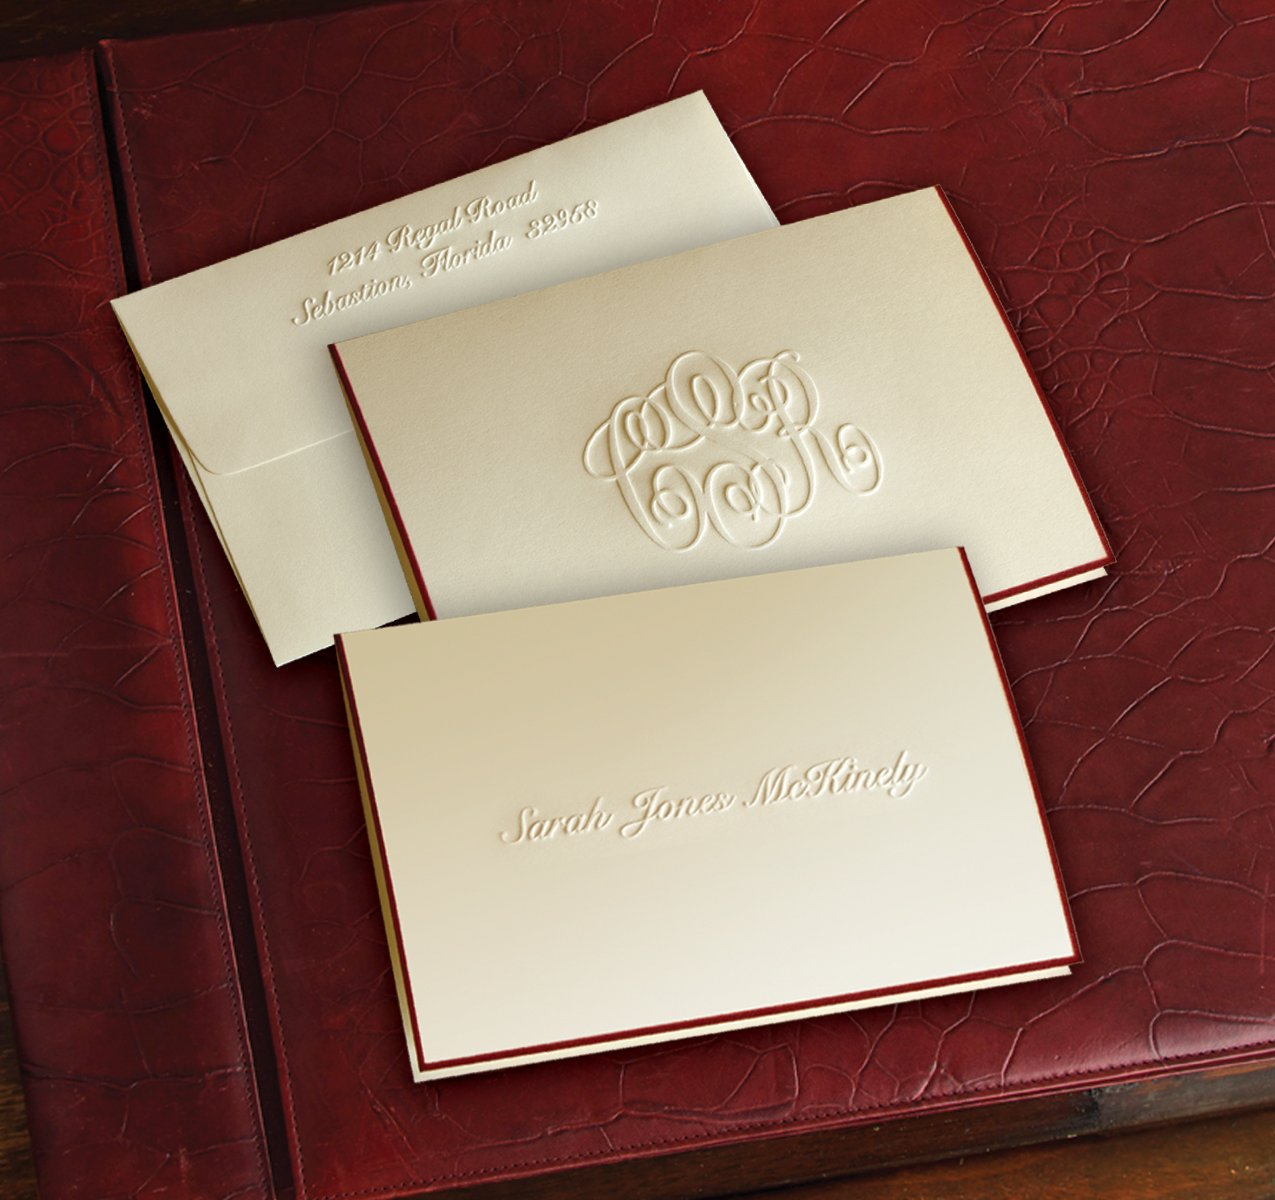 Wine Hand Bordered Embossed Fold Notes - 6232